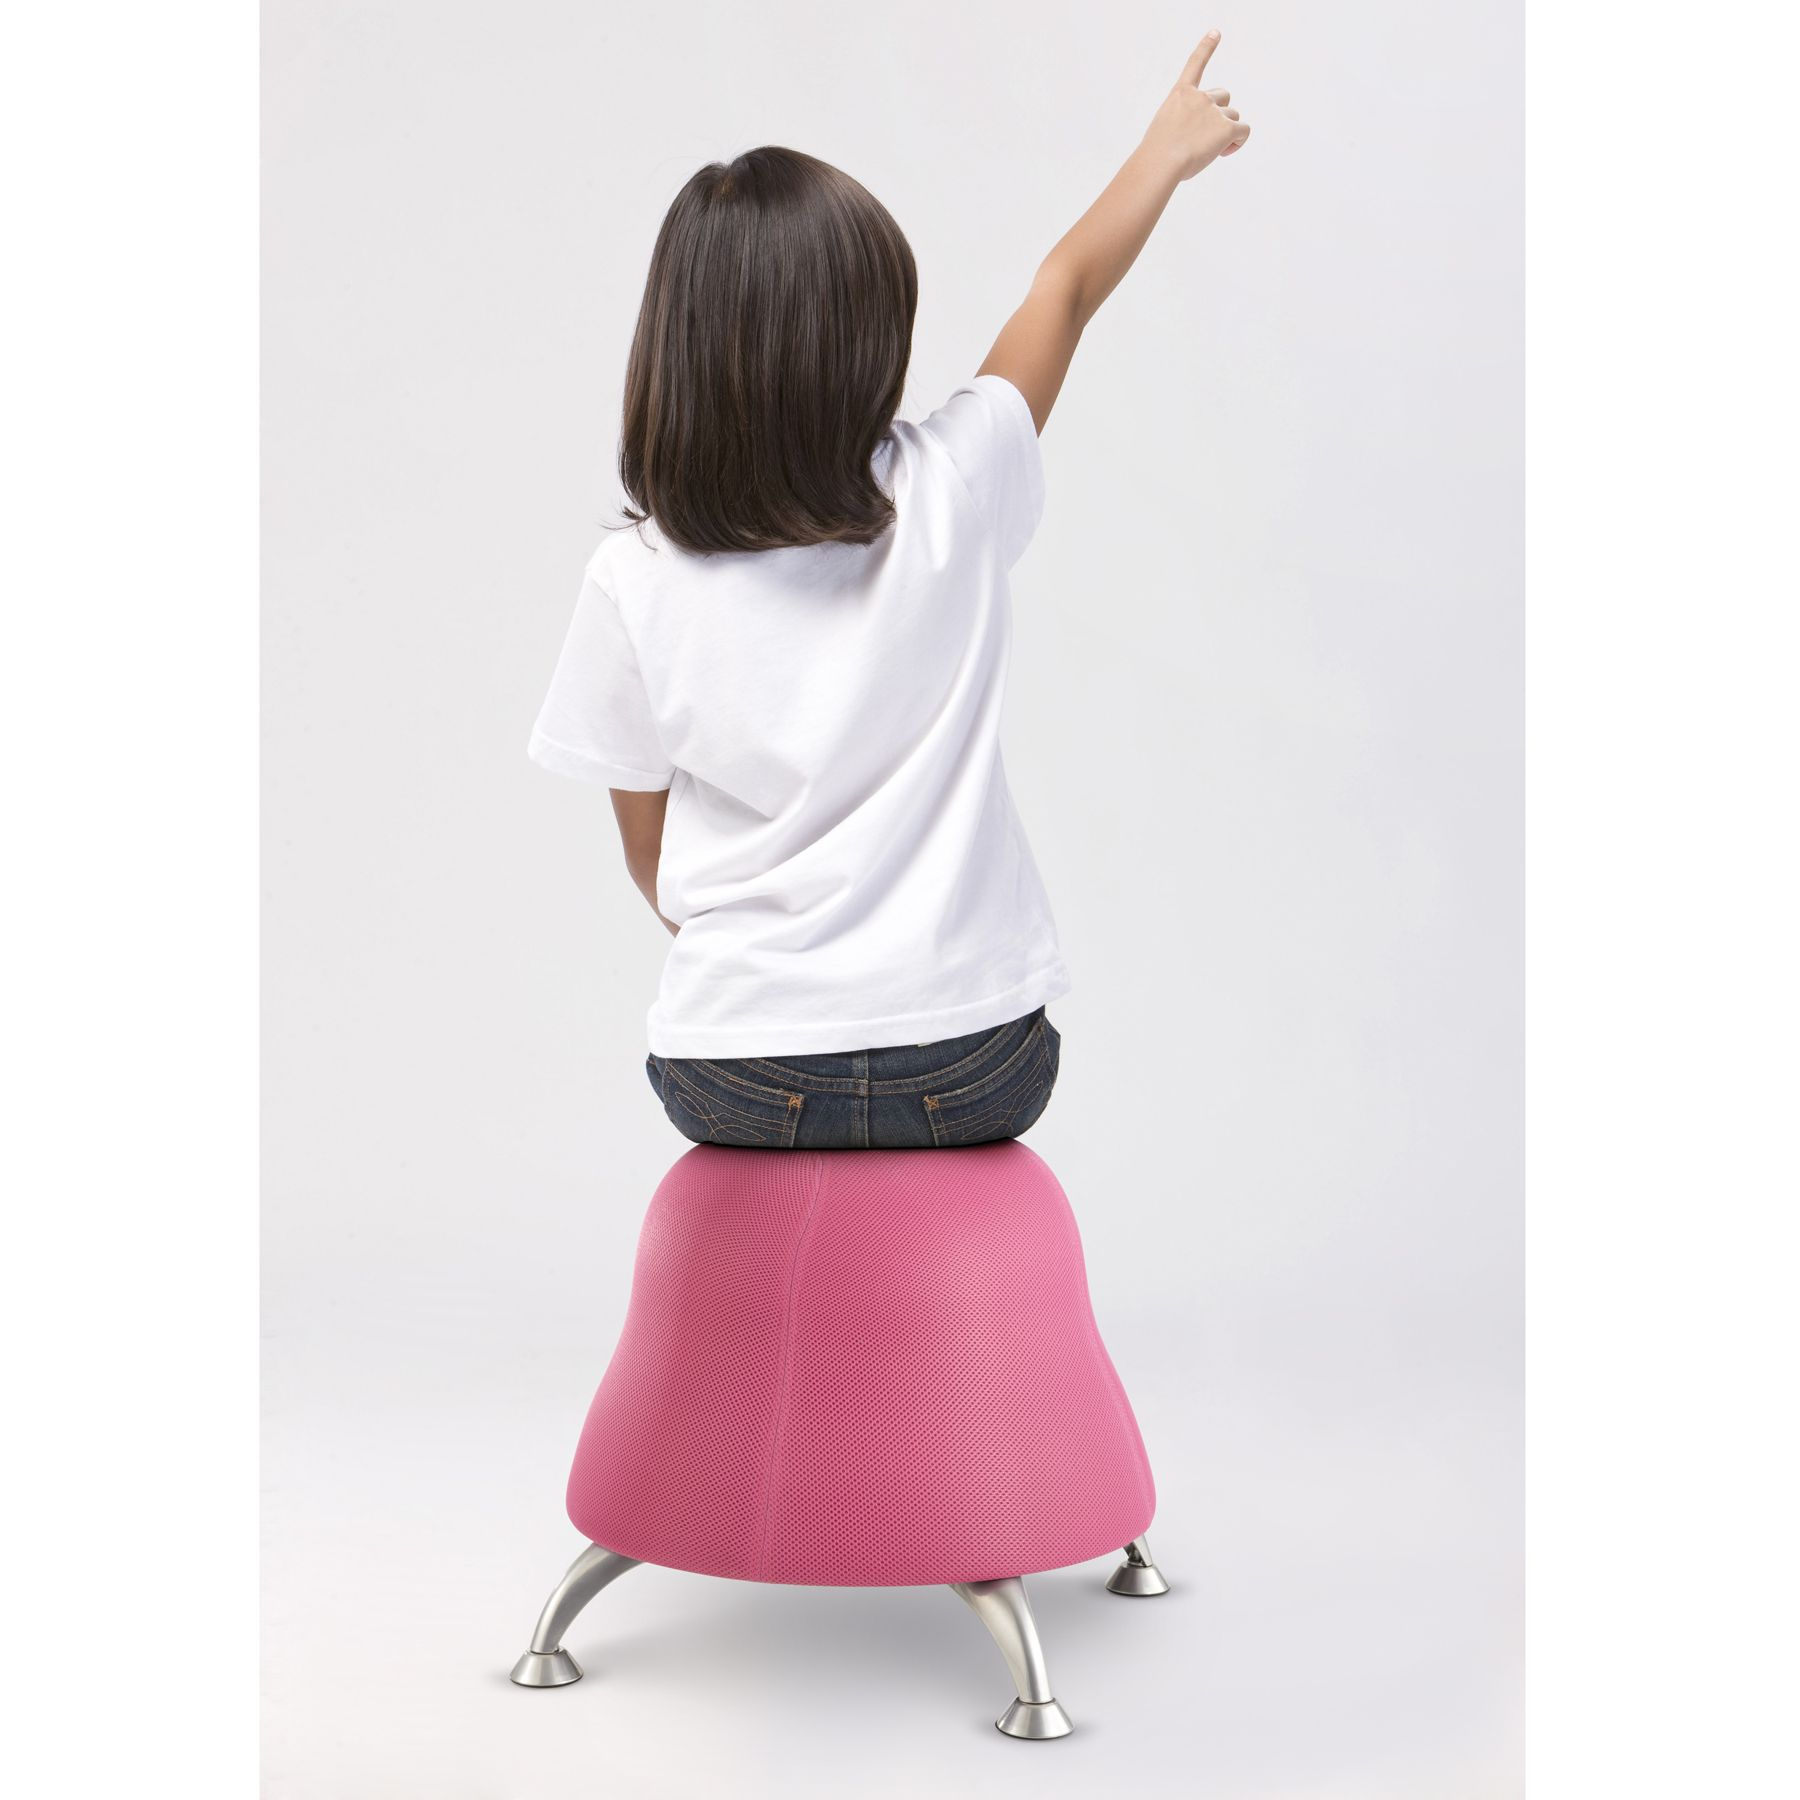 Safco Products Runtz™ Ball Chair. Www.SafcoProducts.com.